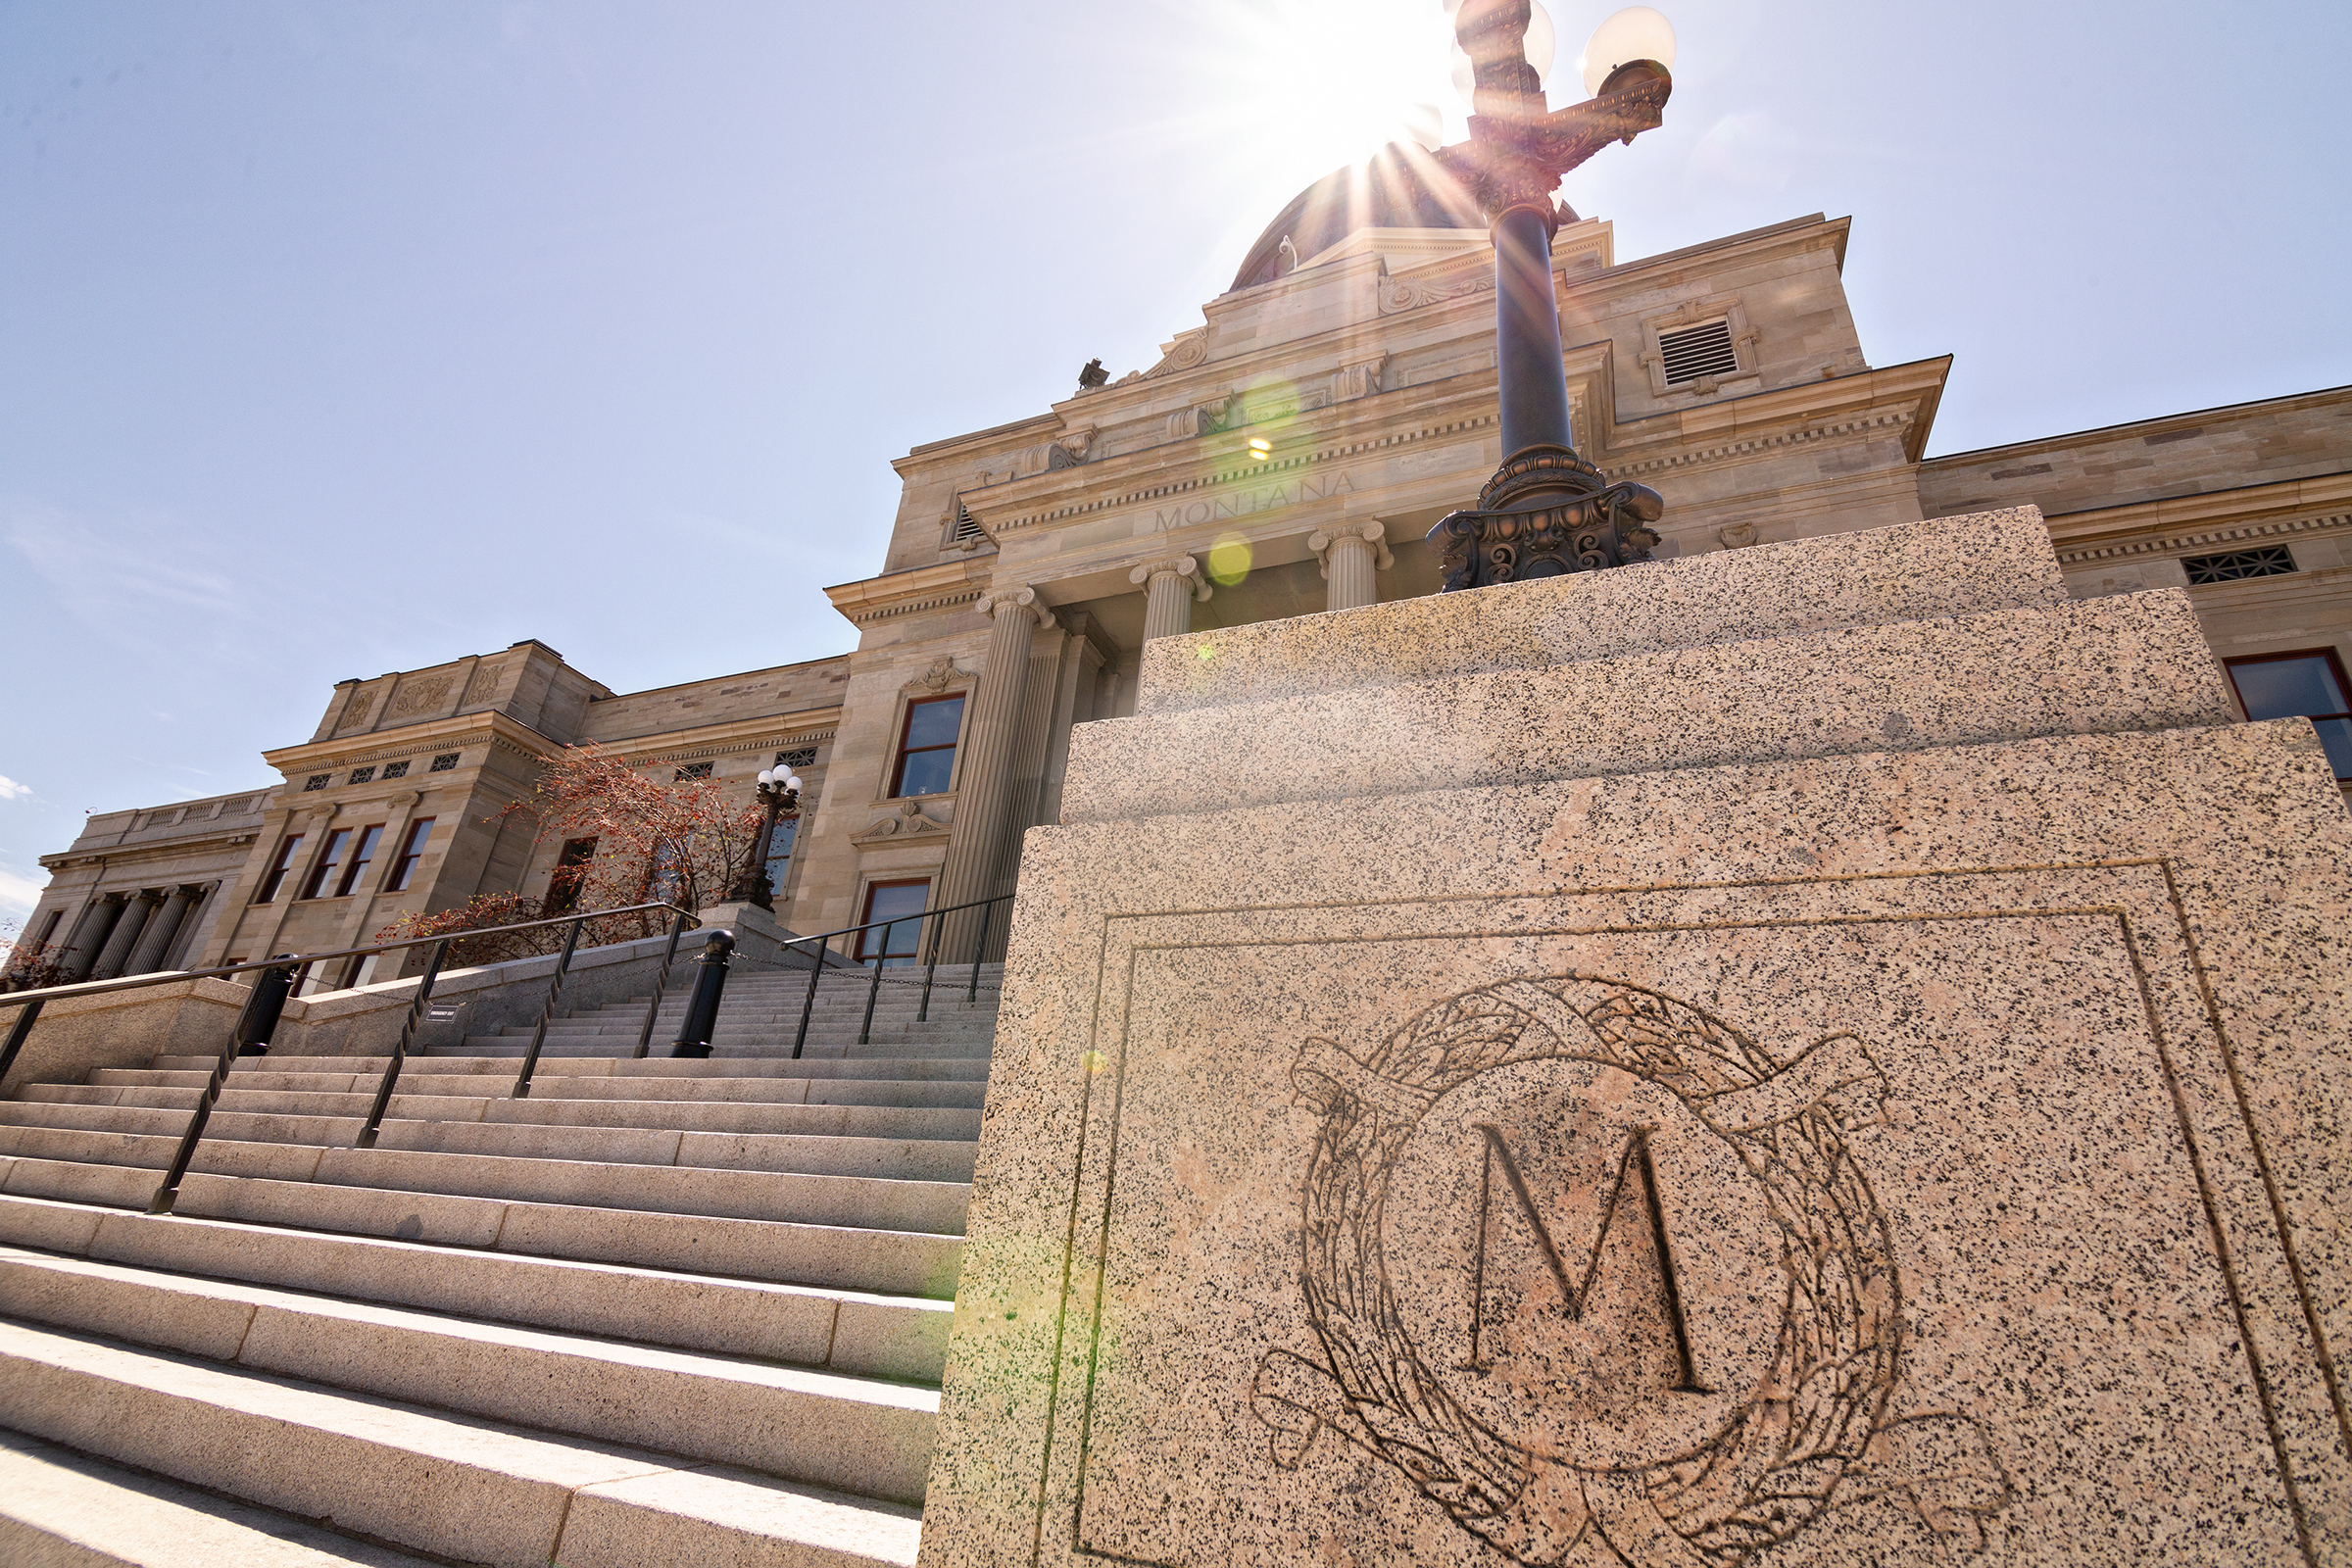 UPDATED: Regents, MFPE file separate challenges over Regents' authority